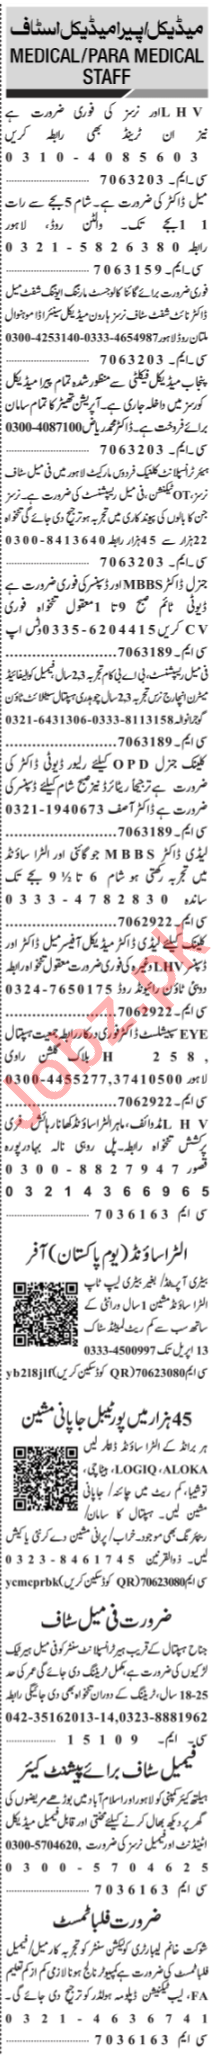 Jang Sunday Classified Ads 24th March 2019 for Medical